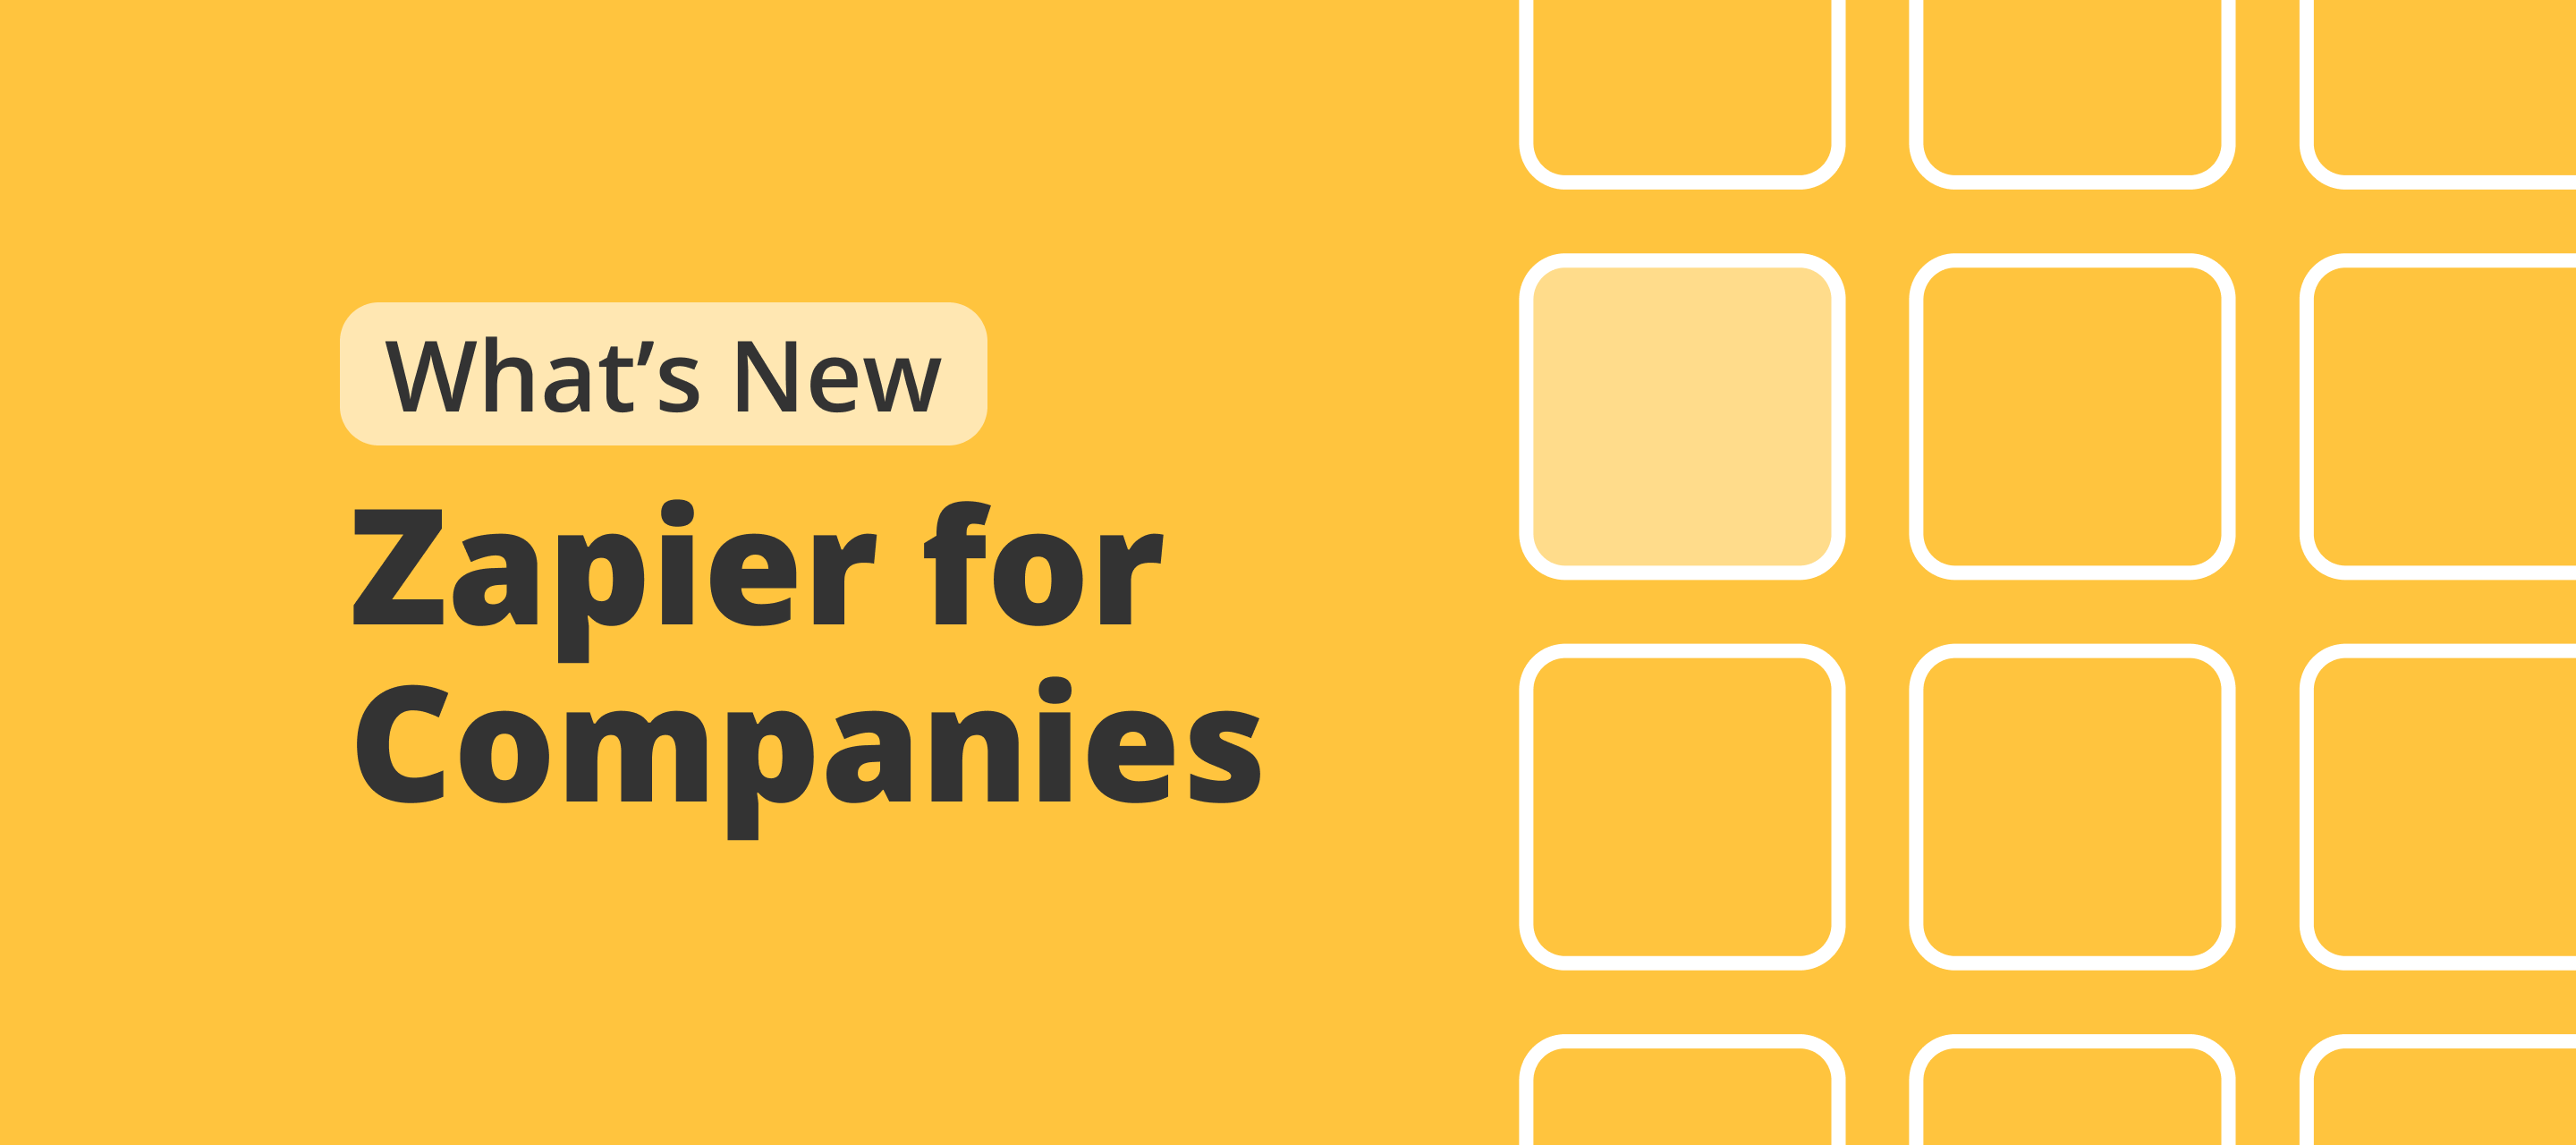 Introducing Zapier for Companies